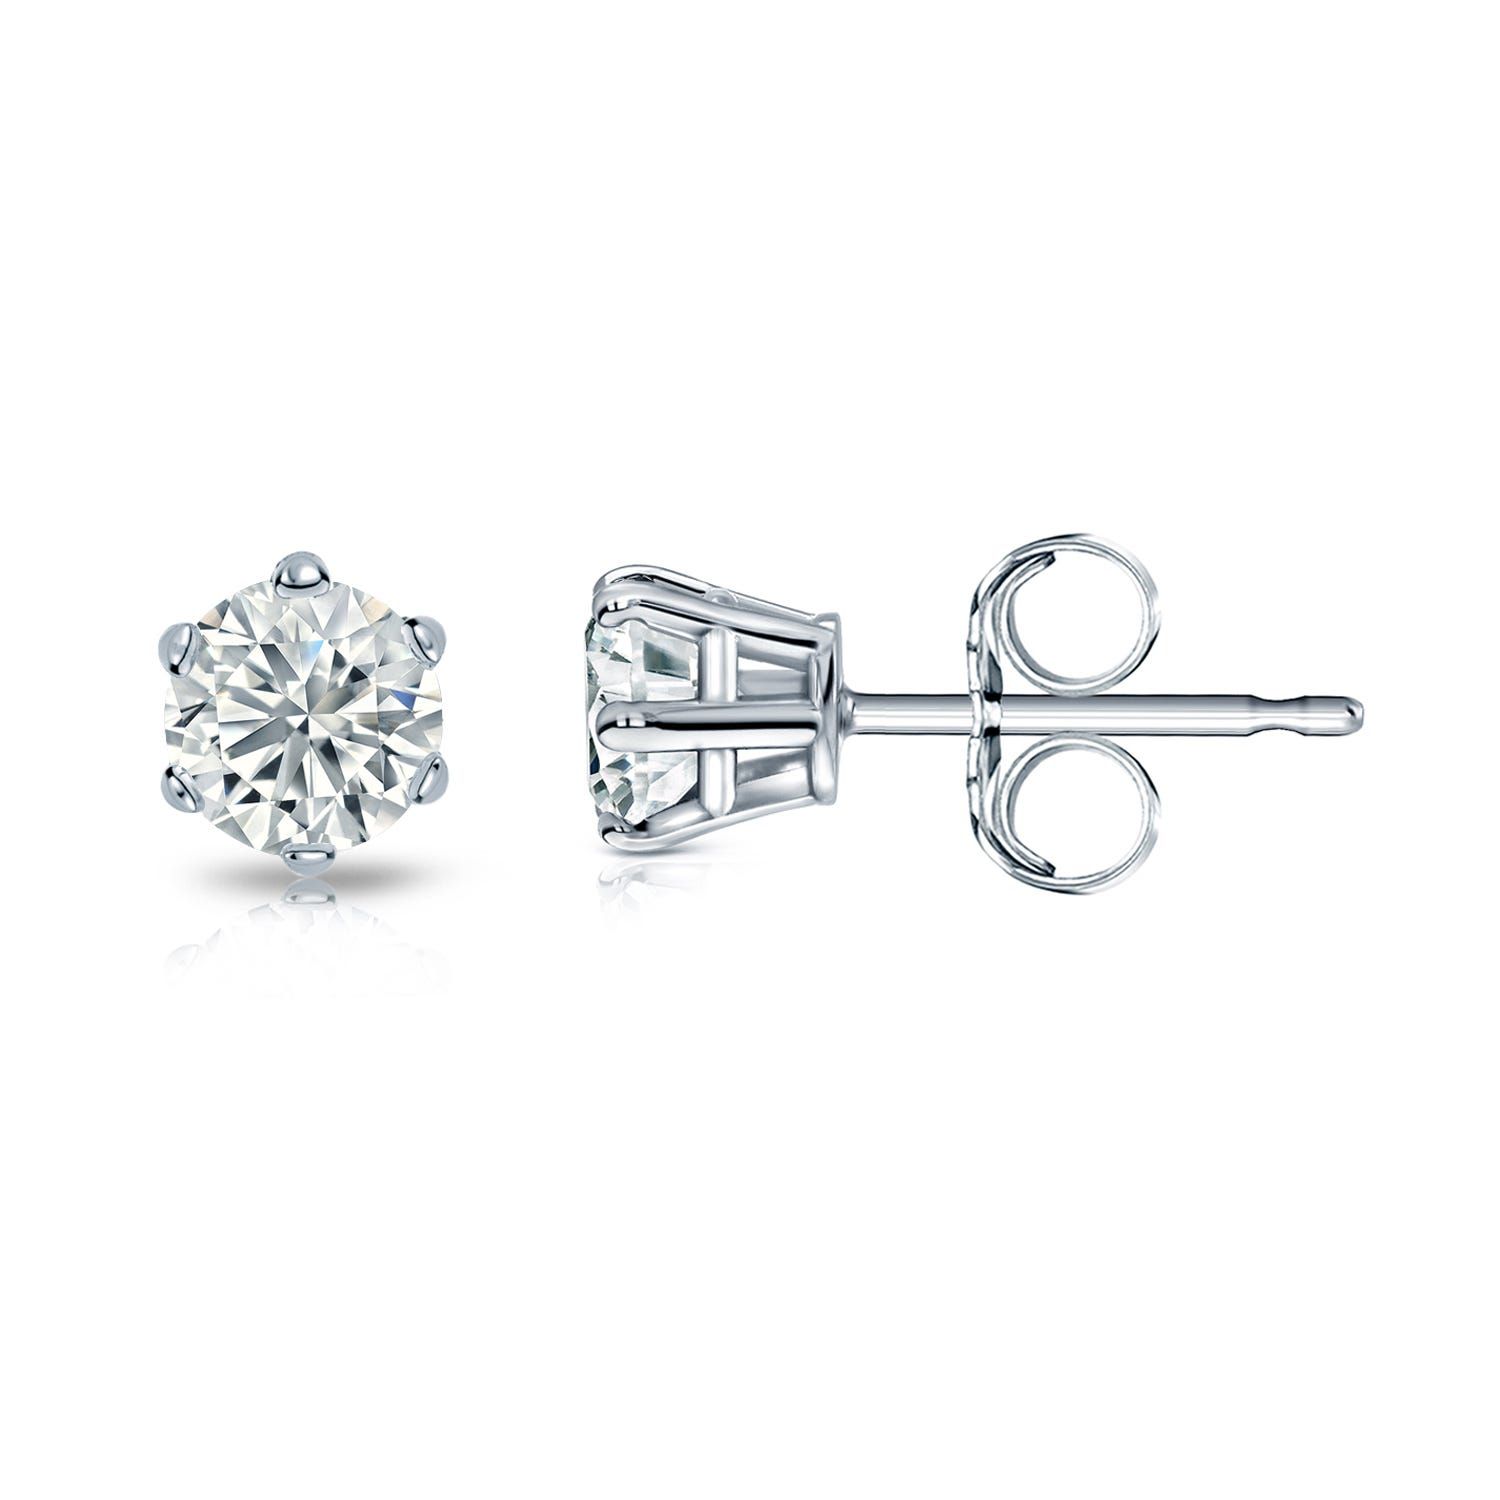 Round Diamond 1/3ctw. (IJ-SI2) Solitaire Stud 6-Prong Earrings in 14K White Gold